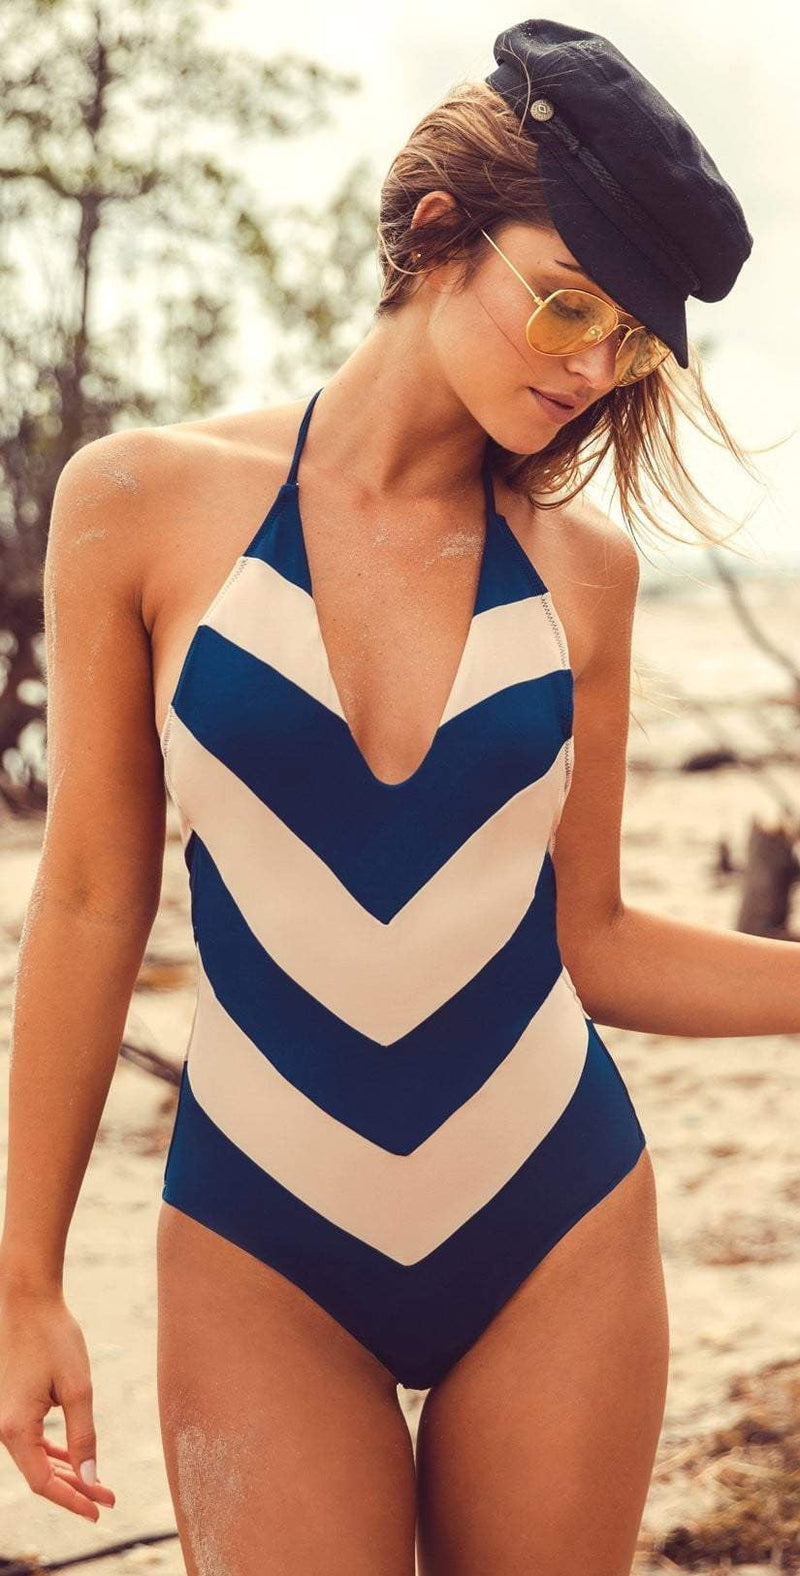 Peixoto Tortola One Piece Swimsuit in Royal Tan 31802L-RYTN: